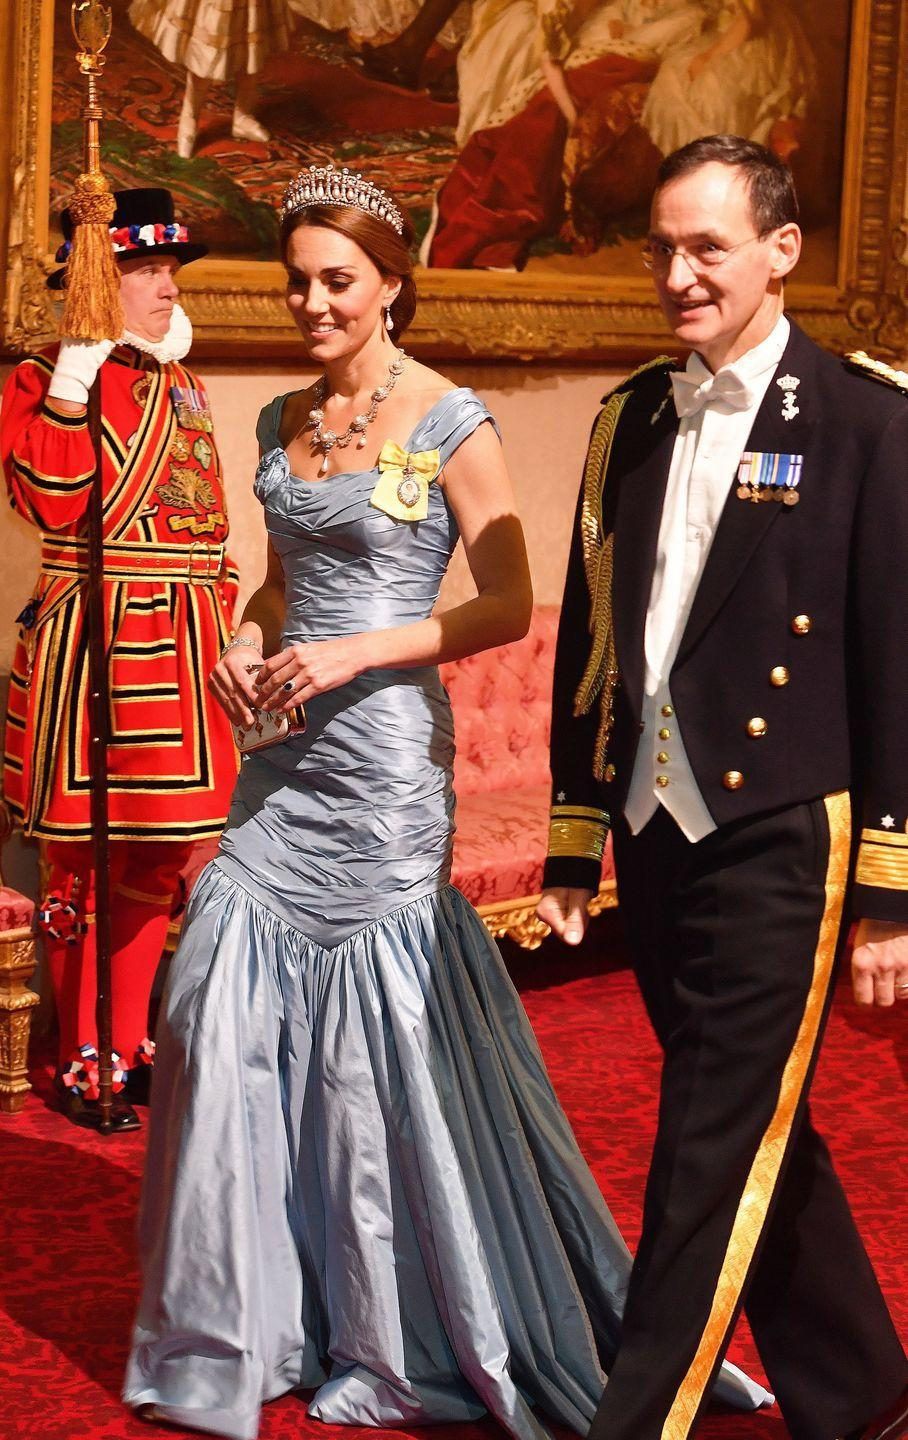 "<p>The Duchess of Cambridge wore an<a href=""https://www.townandcountrymag.com/society/tradition/a24121823/kate-middleton-alexander-mcqueen-blue-dress-dutch-state-banquet/"" rel=""nofollow noopener"" target=""_blank"" data-ylk=""slk:ice blue dress"" class=""link rapid-noclick-resp""> ice blue dress</a> by Alexander McQueen along with a pearl and diamond necklace and <a href=""https://www.townandcountrymag.com/society/tradition/a10302981/cambridge-love-knot-tiara/"" rel=""nofollow noopener"" target=""_blank"" data-ylk=""slk:the Cambridge Lover's Knot tiara"" class=""link rapid-noclick-resp"">the Cambridge Lover's Knot tiara</a> for the State Banquet. </p>"